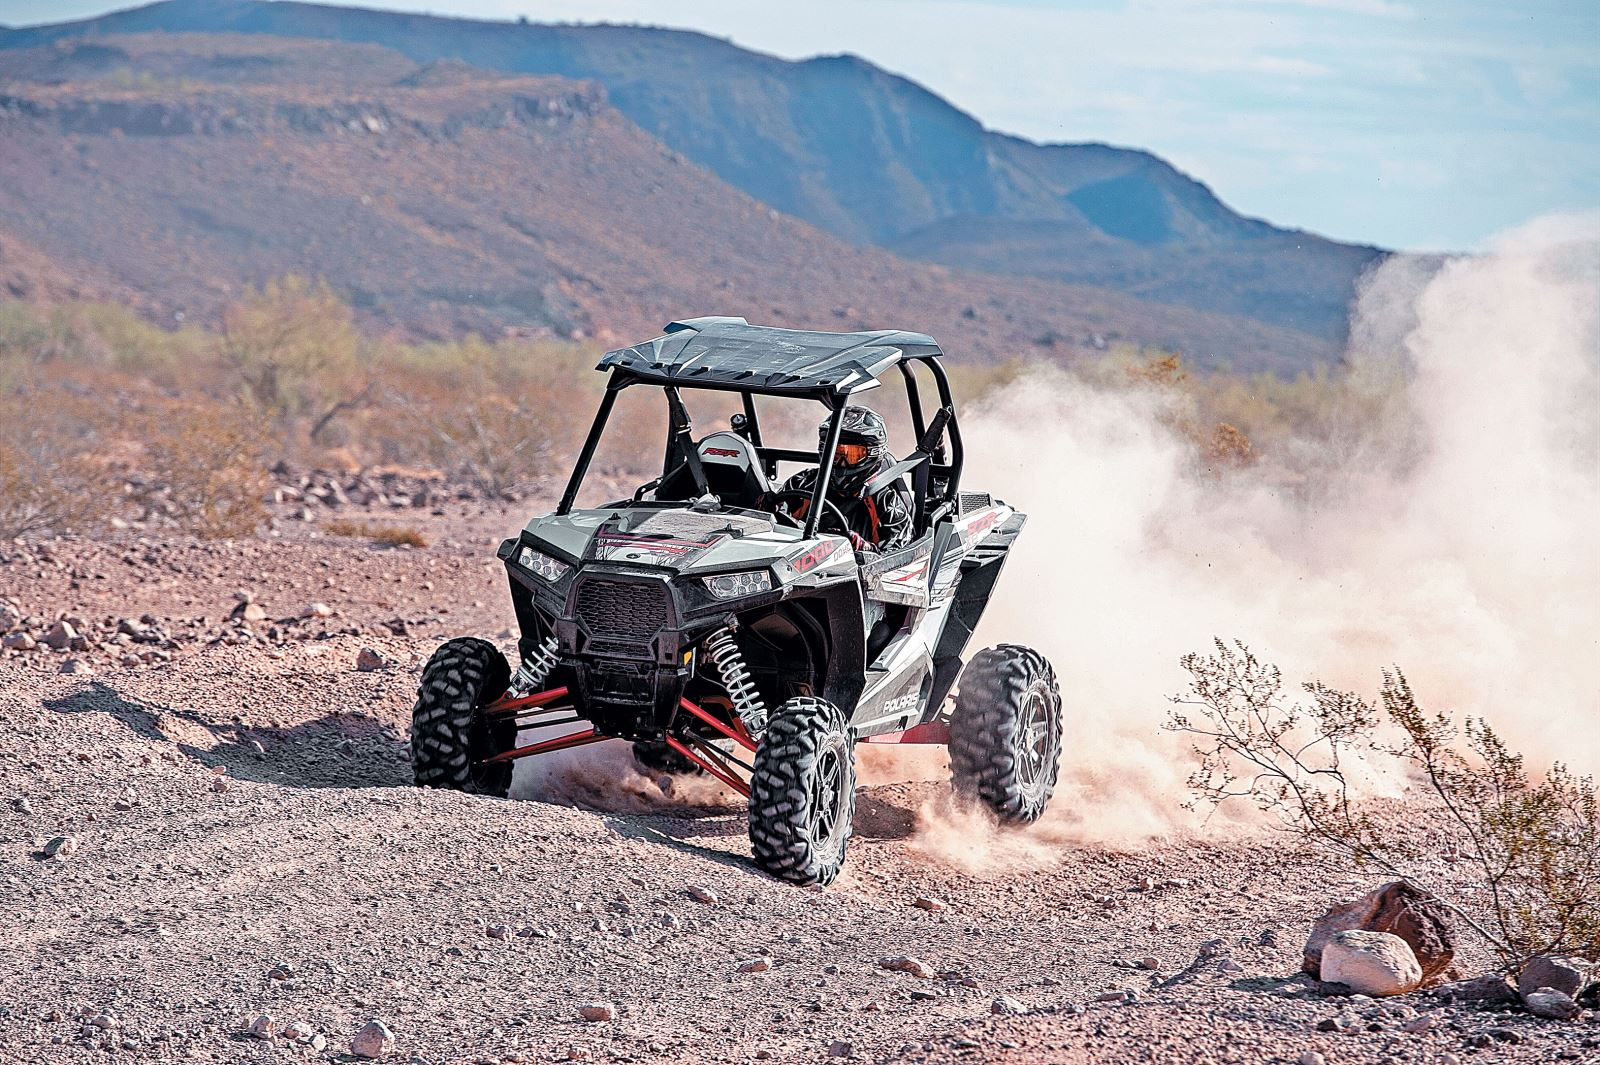 Polaris RZR XP 1000 This is no mirage     it's the real deal